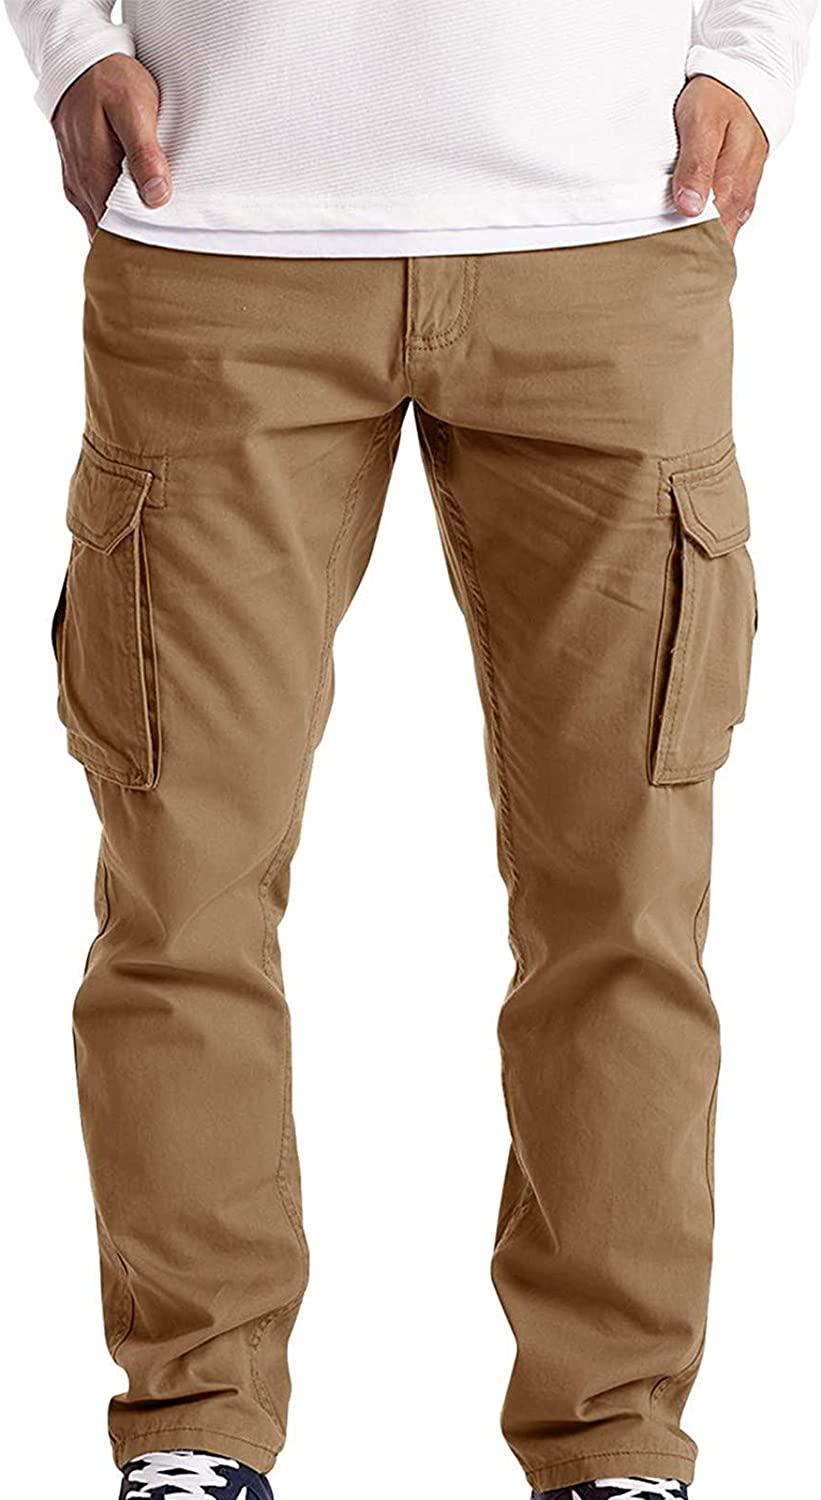 YUNDAN Chino Trouser for Mens Casual Work Long Pants with Pockets Outdoor Hunting Tactical Waterproof Pants